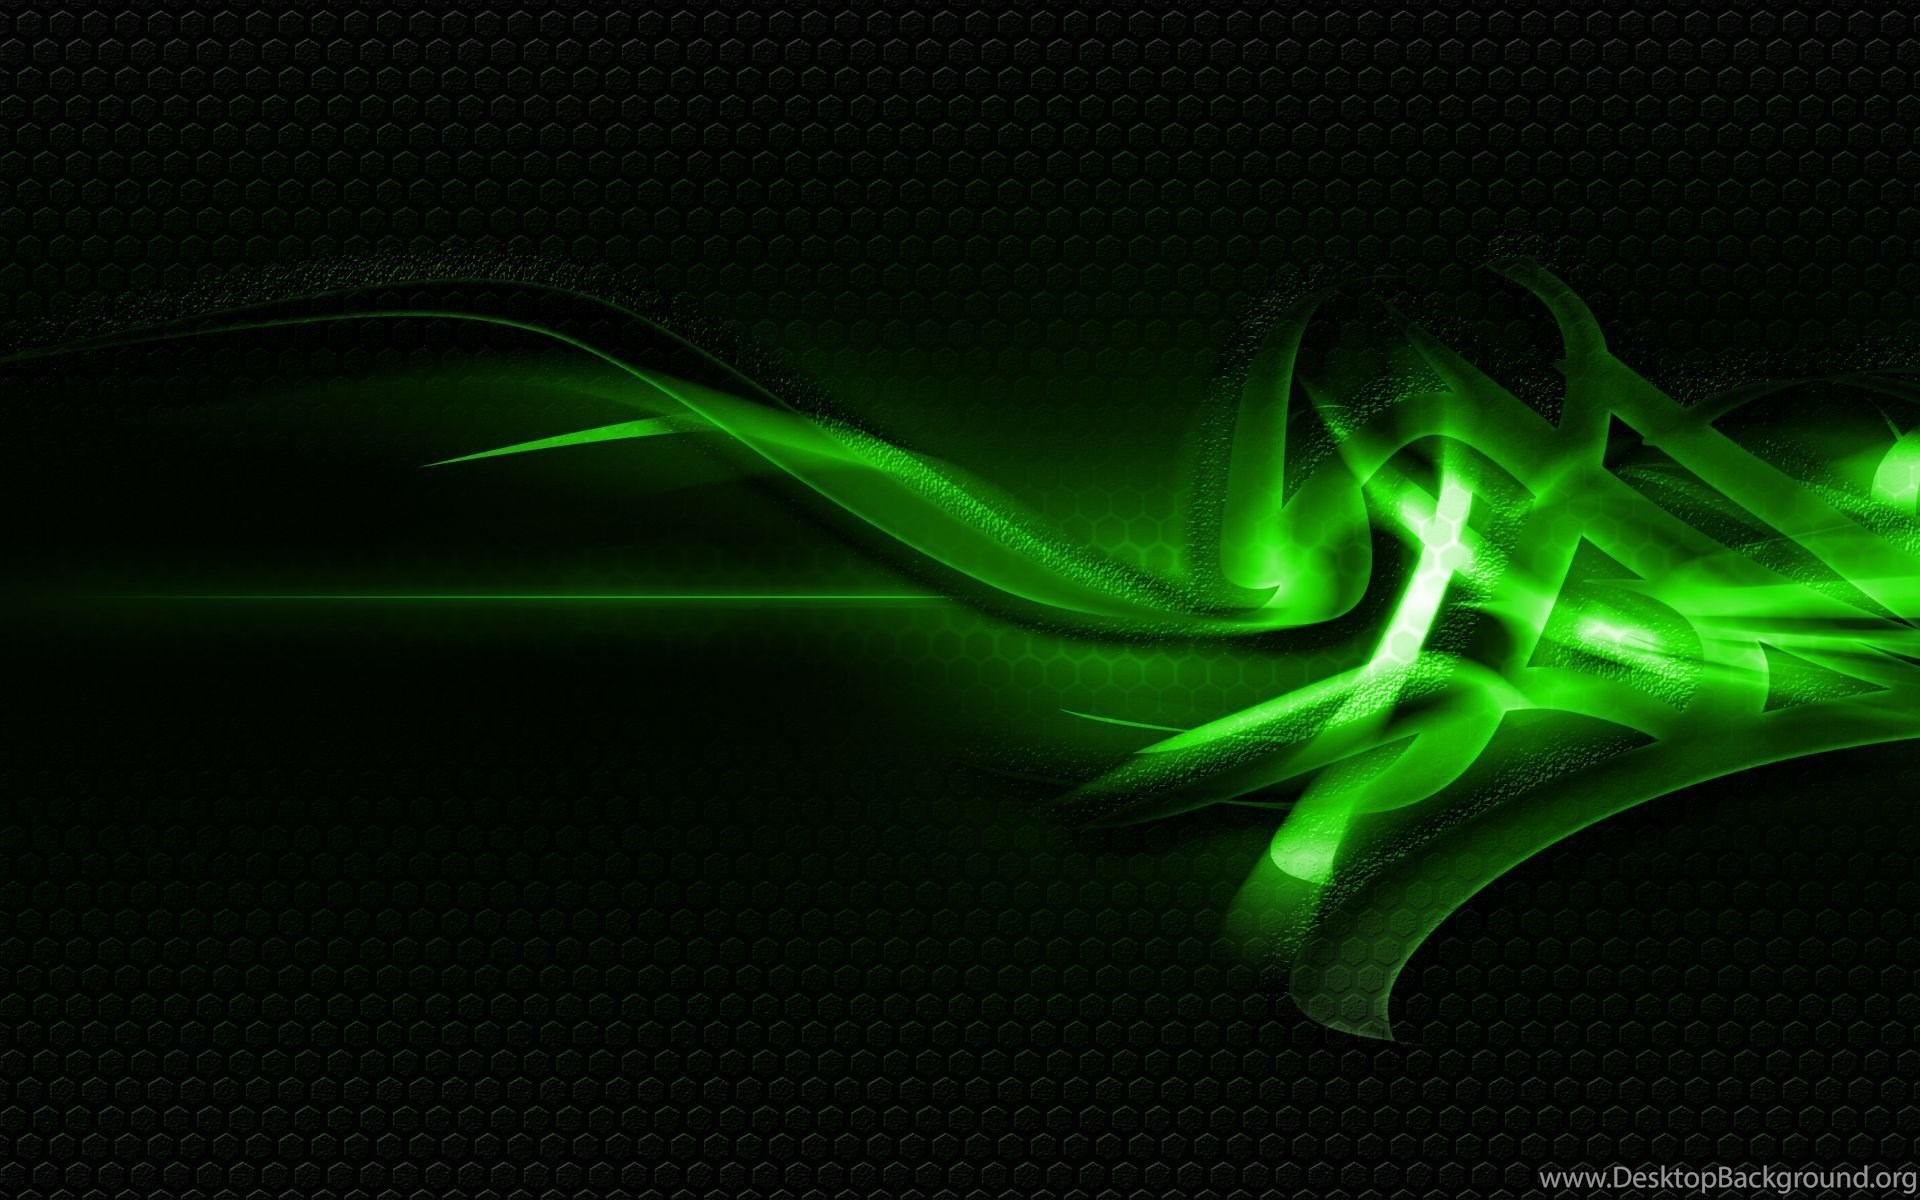 Black And Green Abstract Wallpaper Backgrounds Hd 1458 Hd